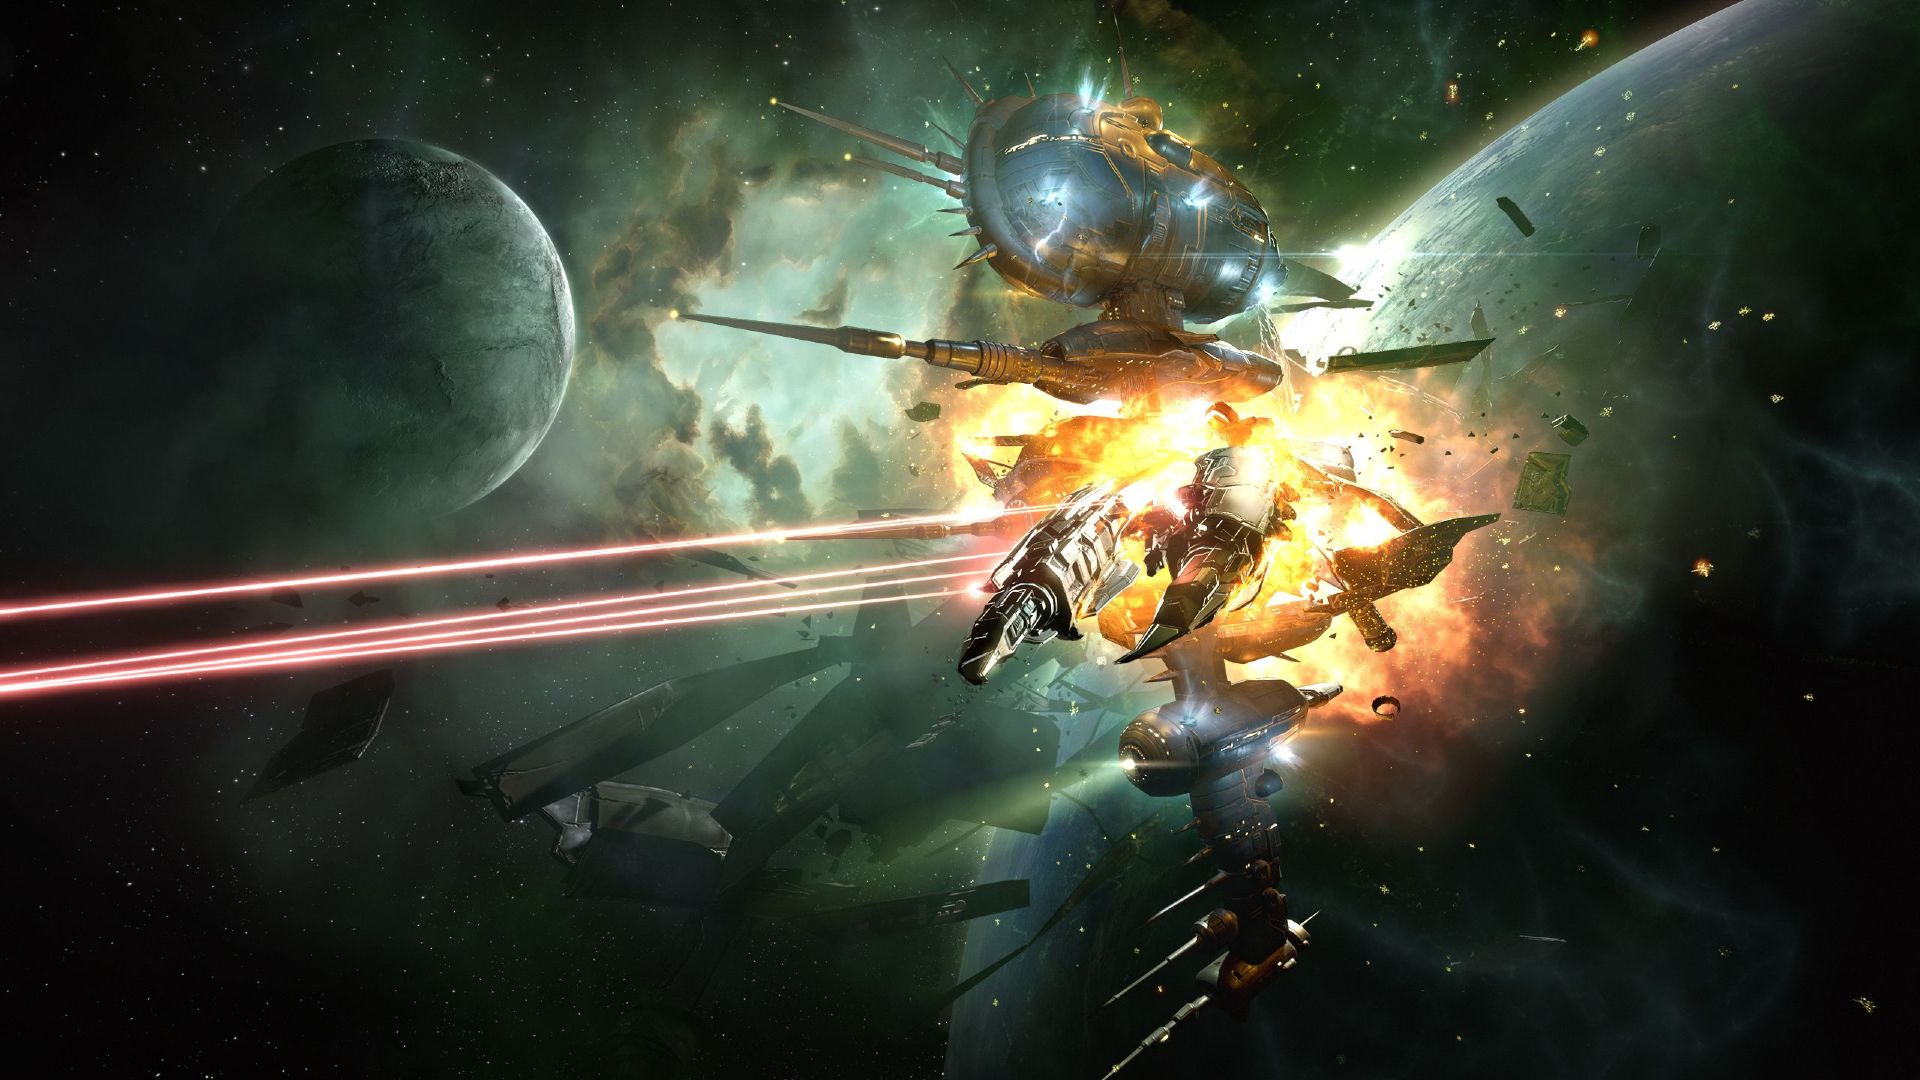 Eve Online's annual 'egg' hunt is back, just in time for Easter